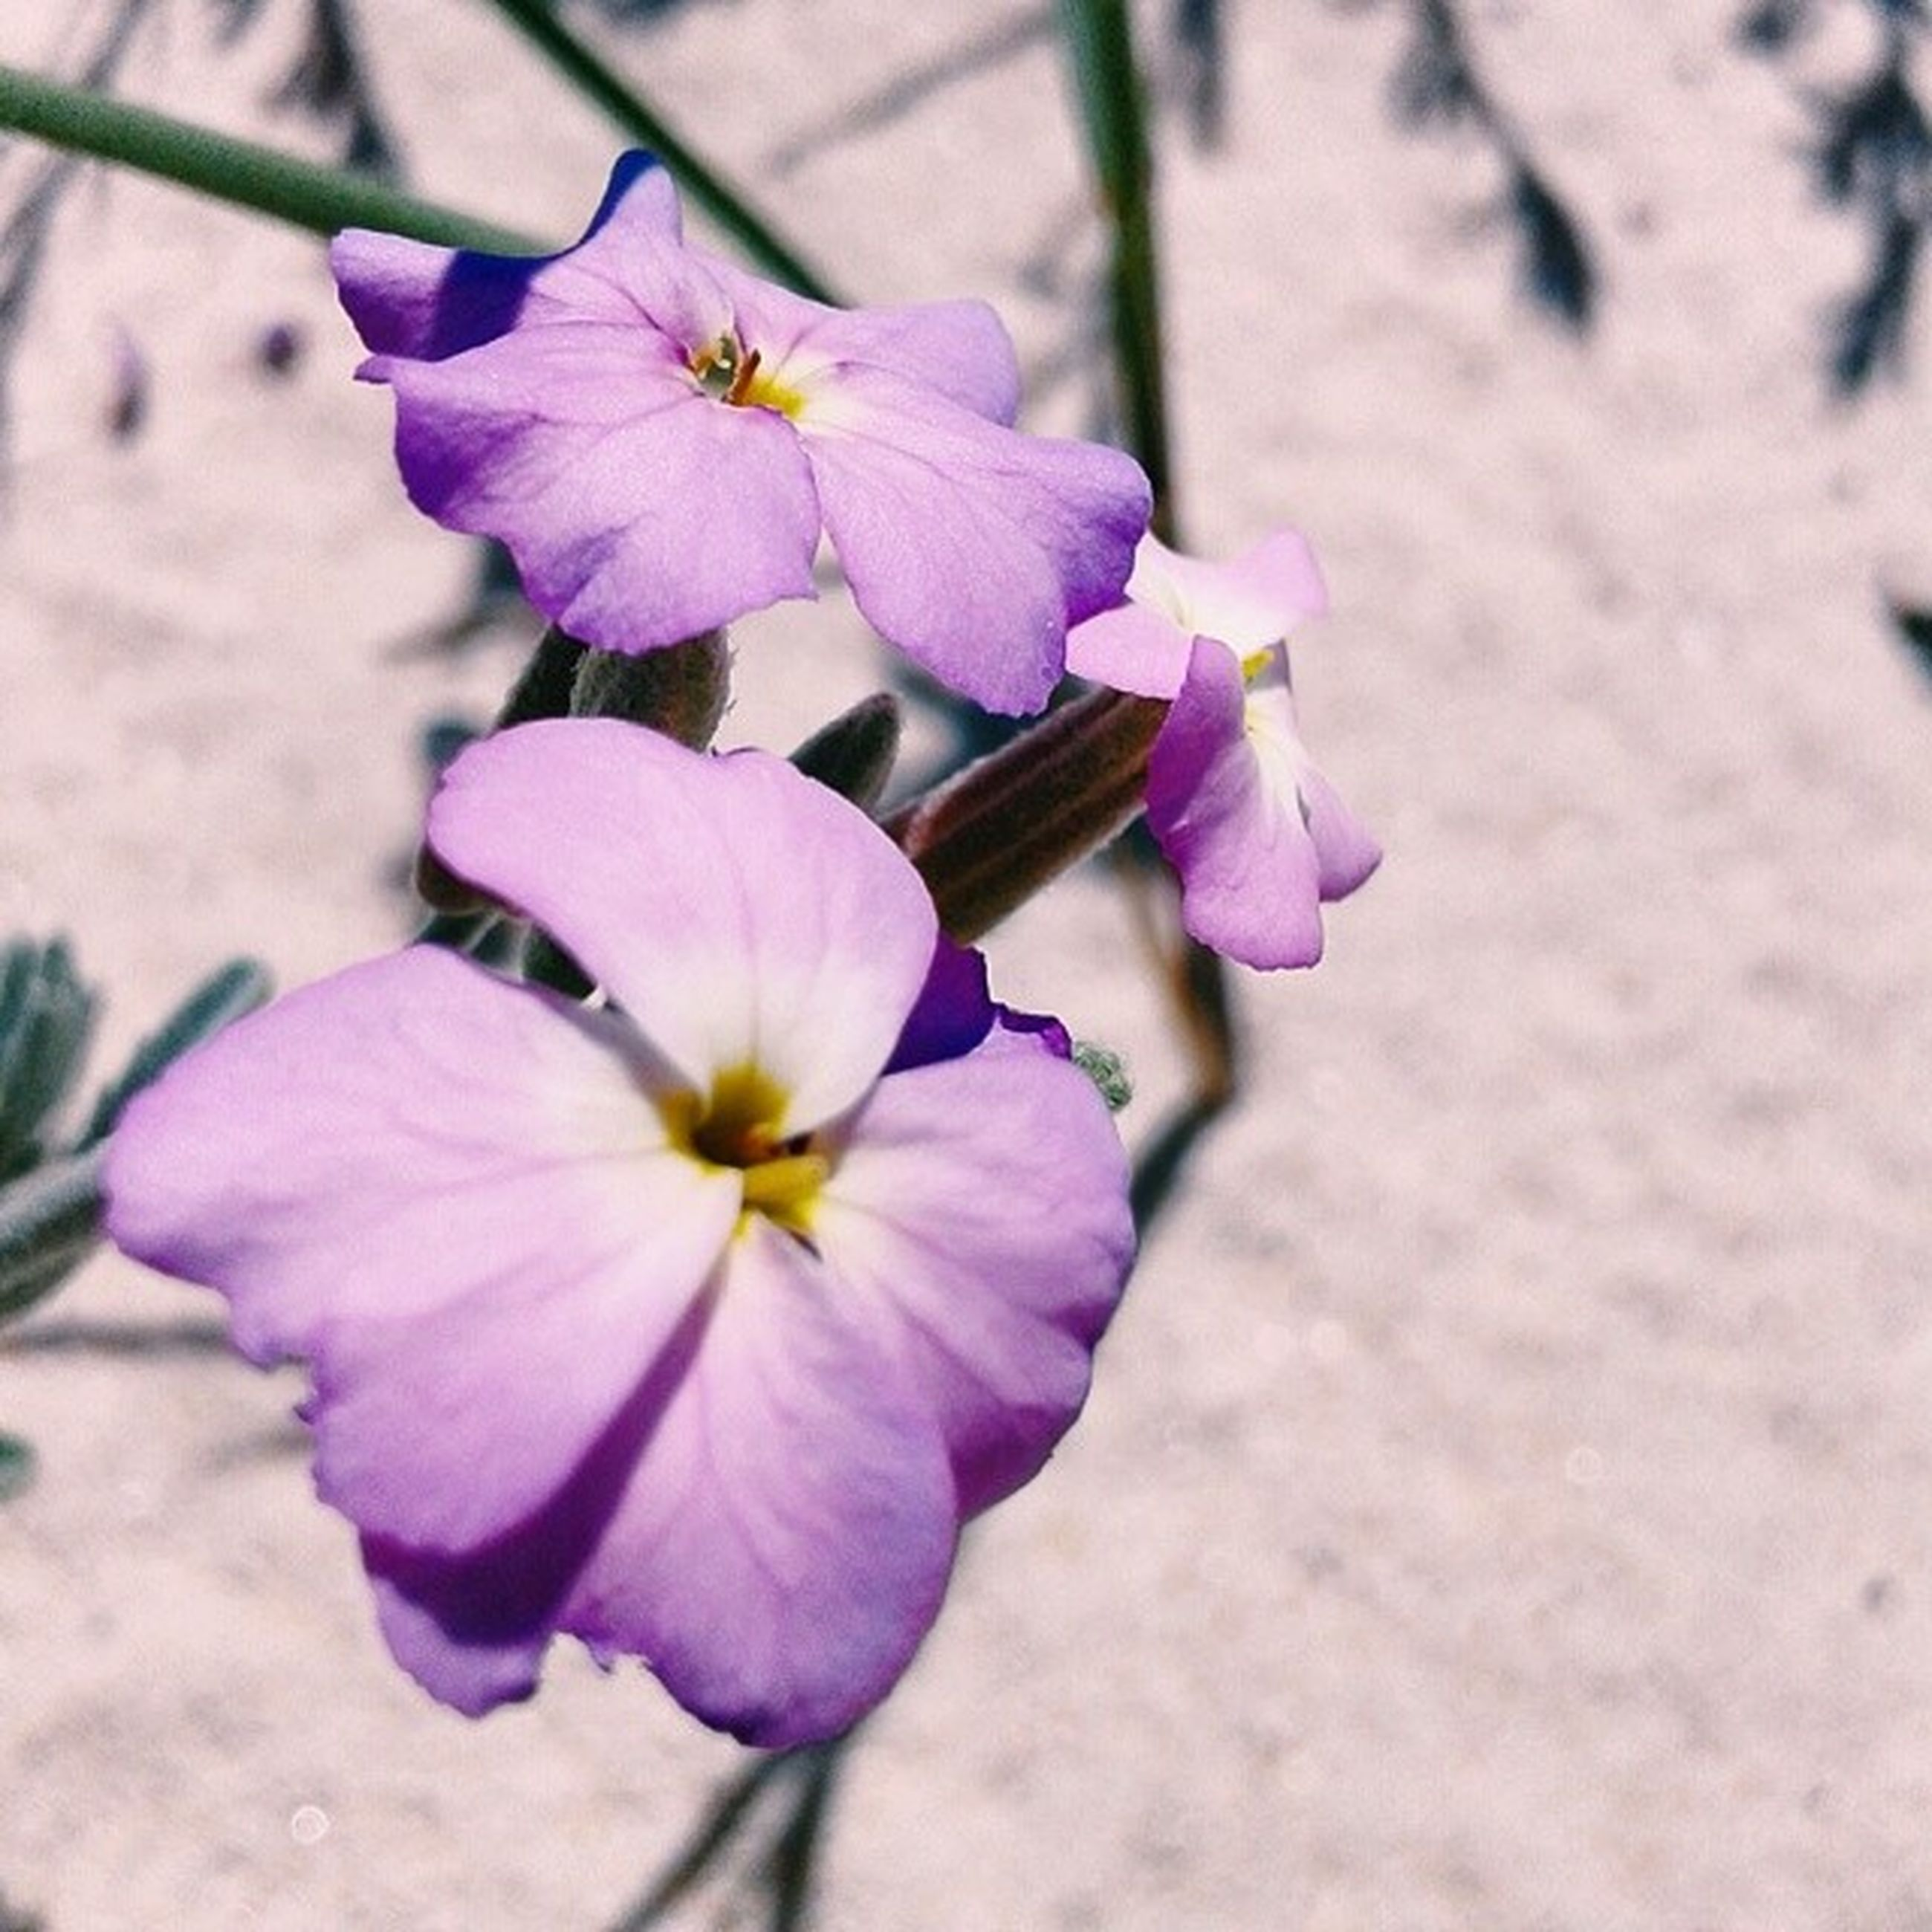 flower, petal, fragility, freshness, purple, flower head, beauty in nature, growth, close-up, focus on foreground, nature, blooming, plant, in bloom, pink color, blossom, outdoors, day, botany, no people